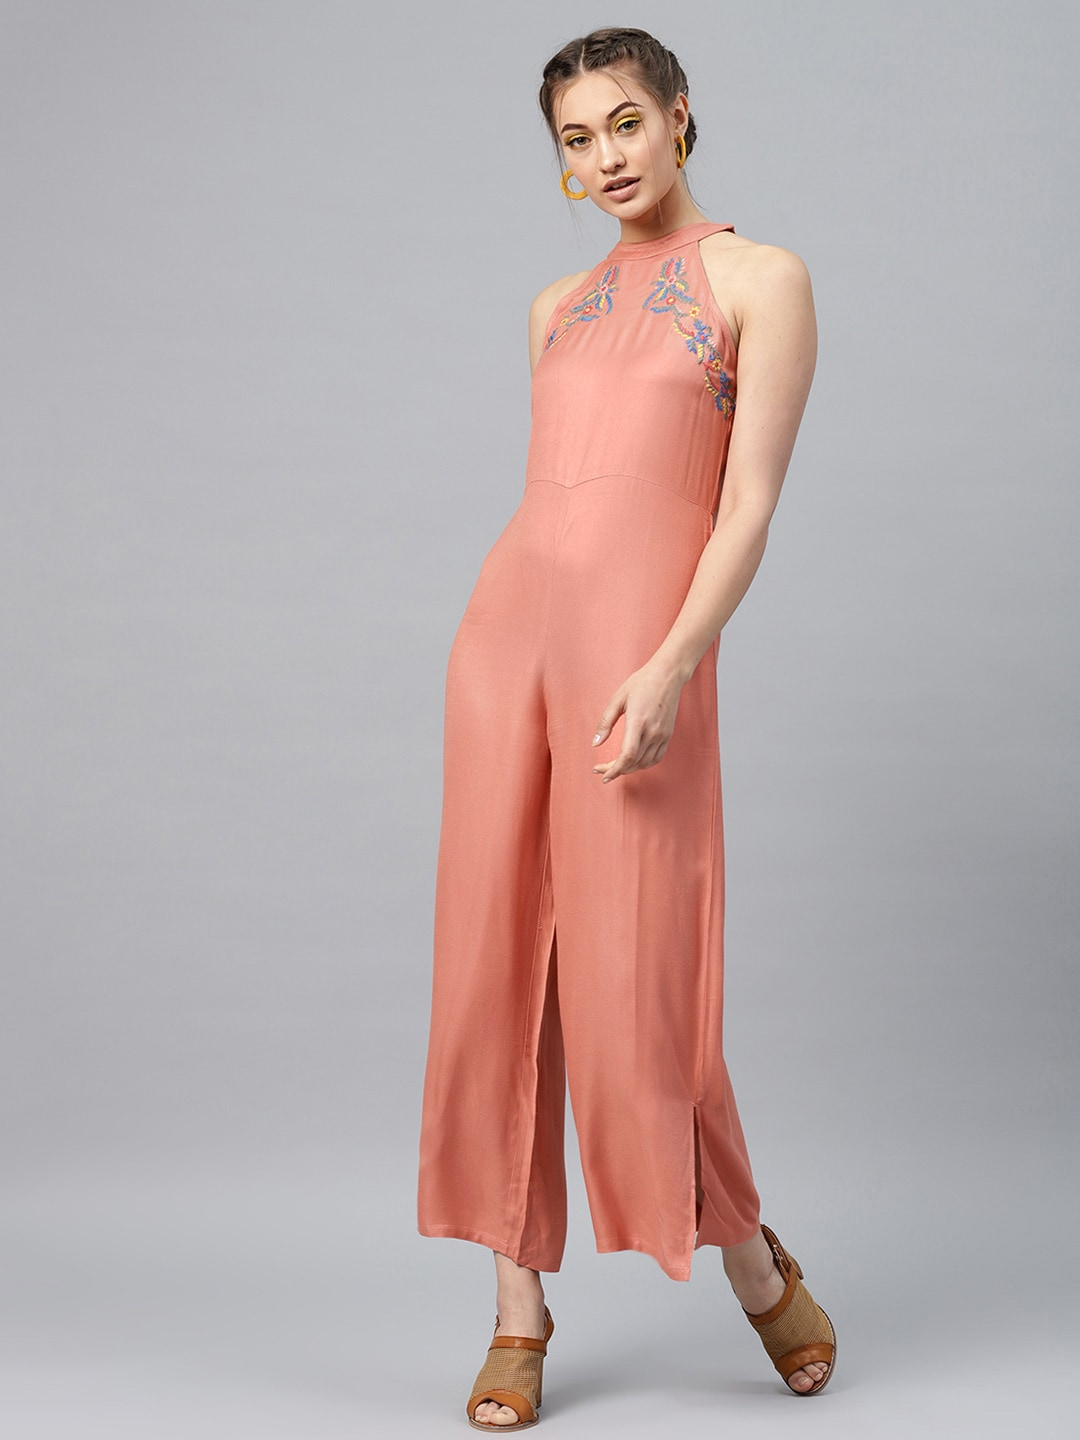 bab8a3d831 Women Jumpsuits Rompers - Buy Women Jumpsuits Rompers Online in India